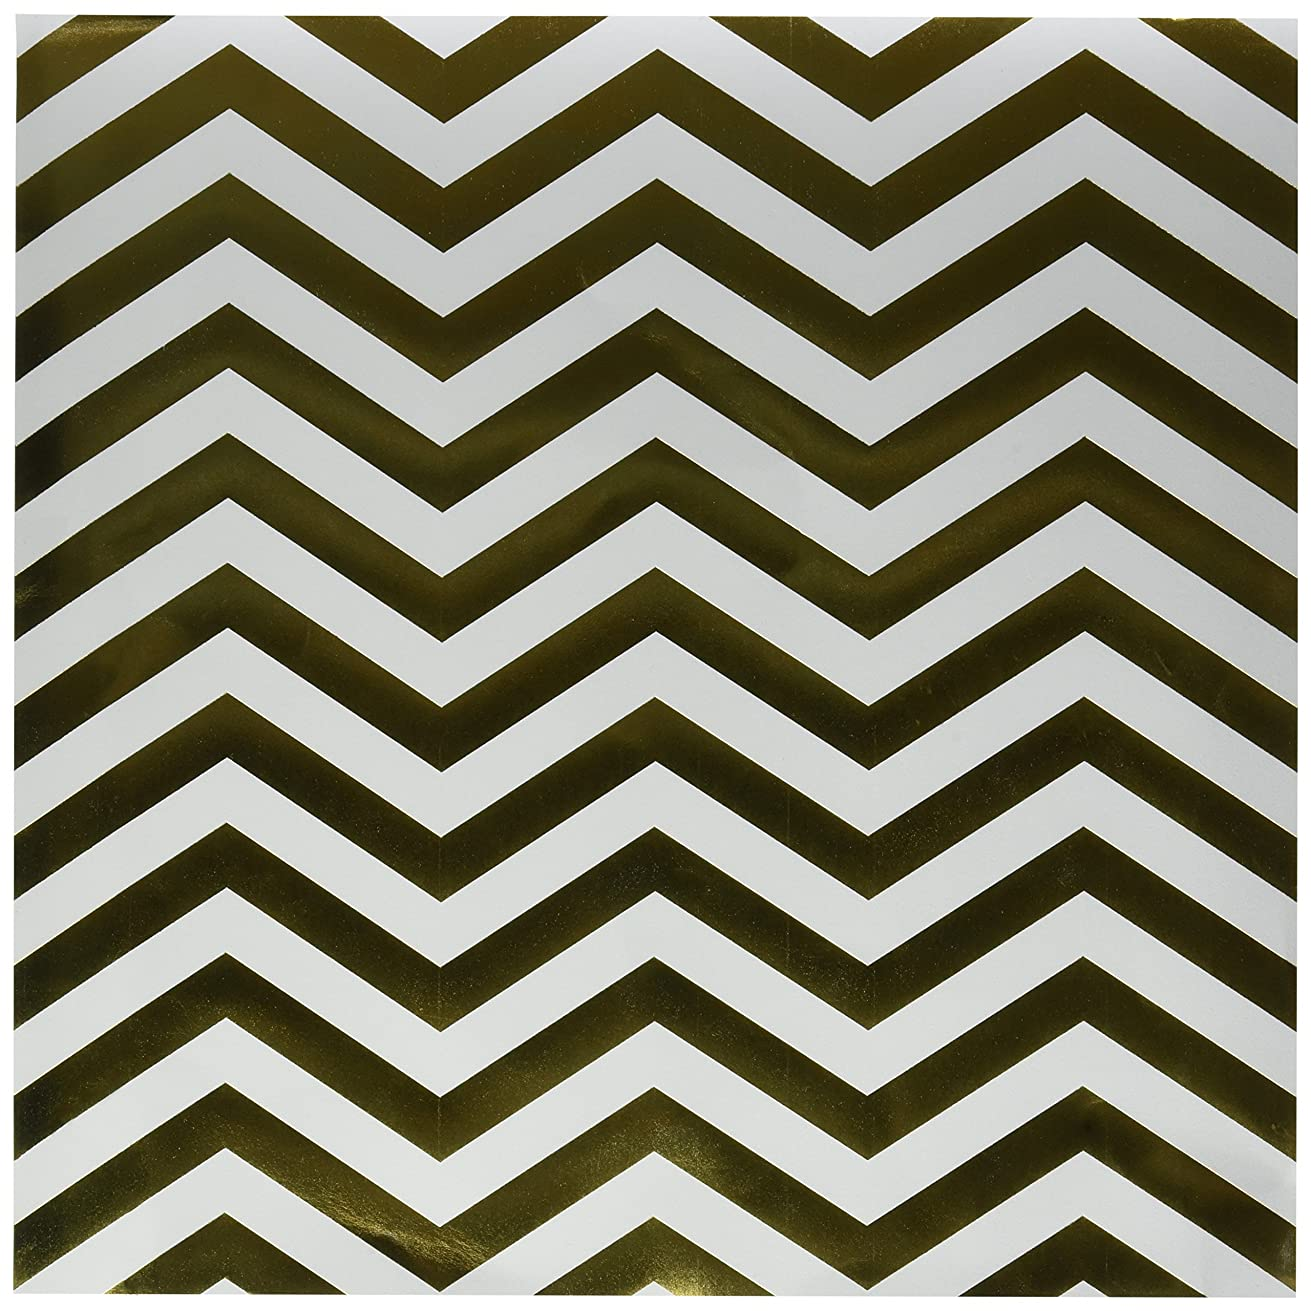 American Crafts DIY Shop 2 Specialty Cardstock, 12 by 12-Inch, Gold Foil Chevron on White